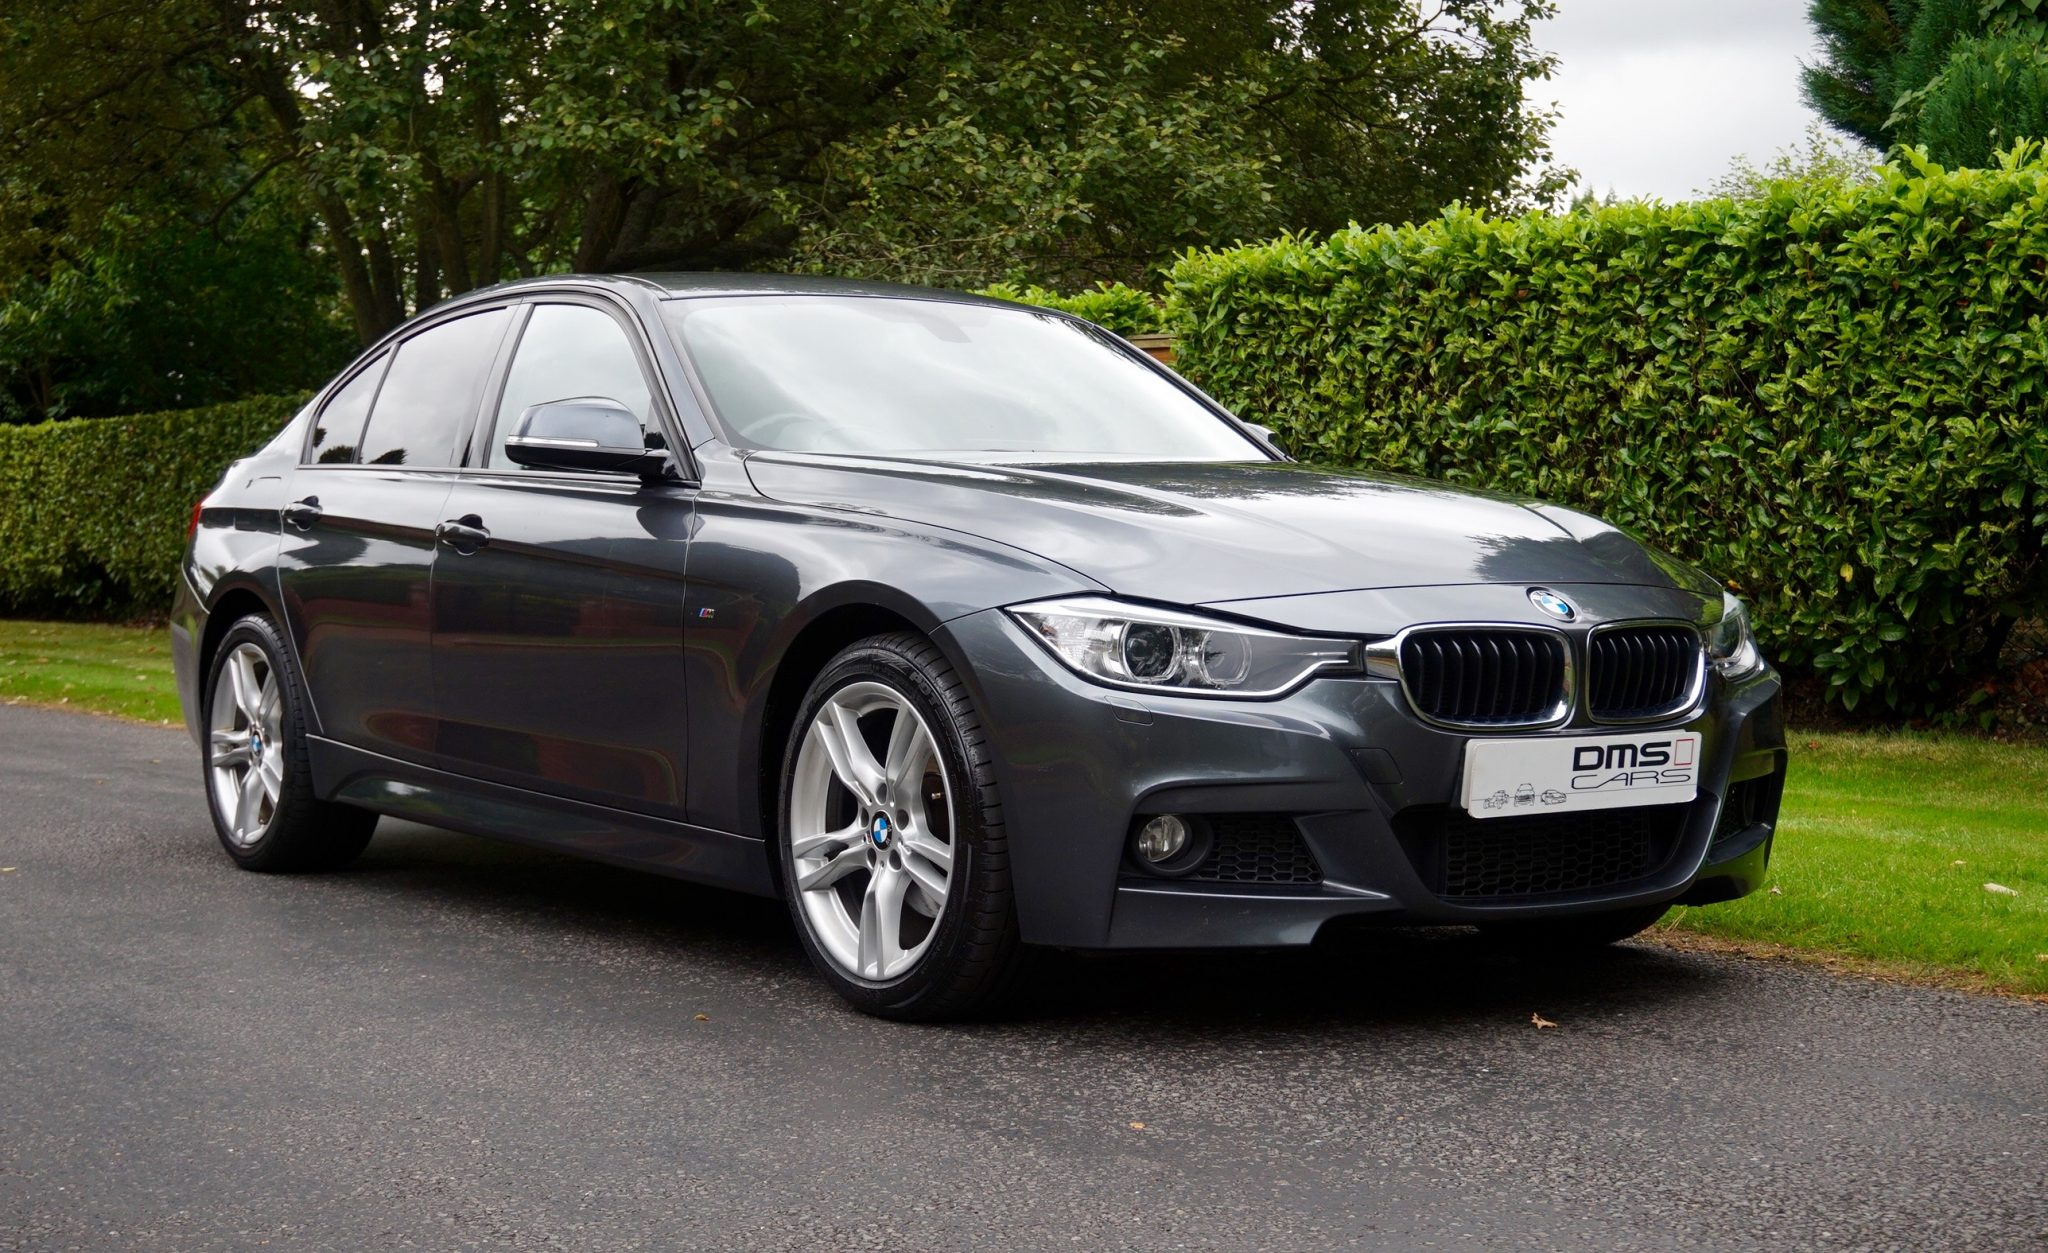 bmw 320d xdrive m sport saloon dms cars. Black Bedroom Furniture Sets. Home Design Ideas